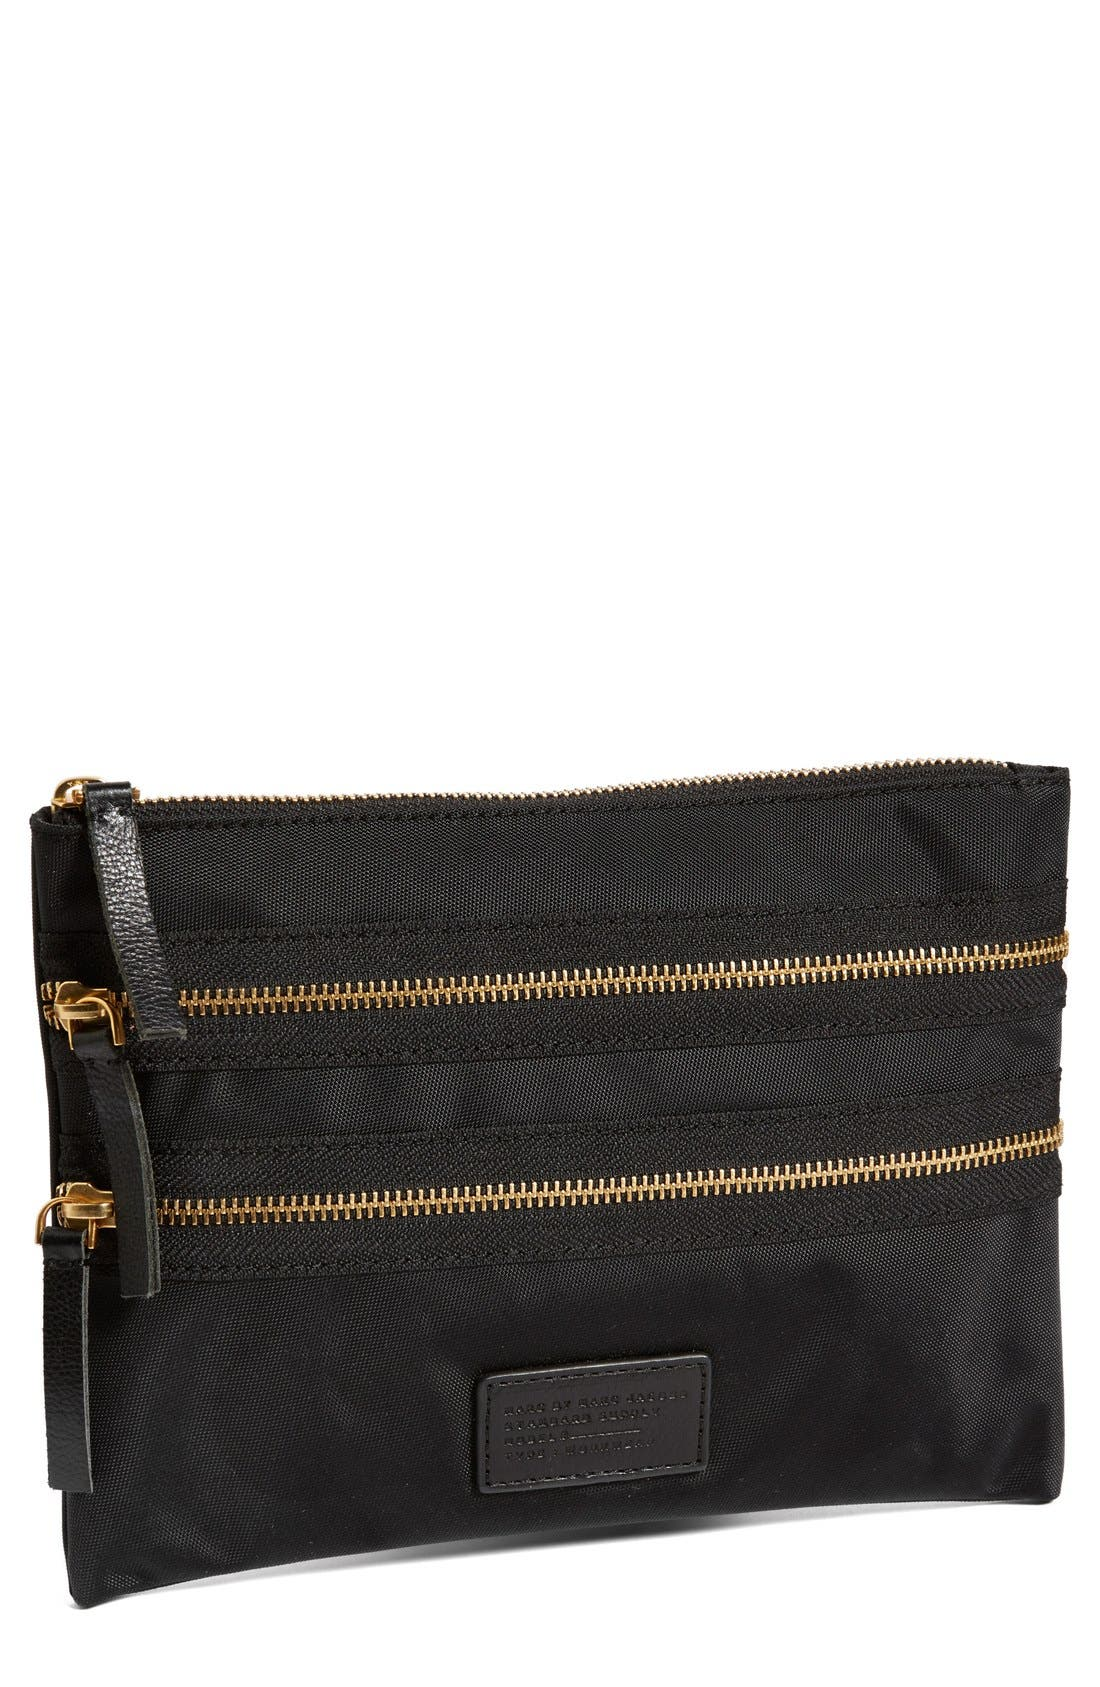 Alternate Image 1 Selected - MARC BY MARC JACOBS 'Domo Arigato' Zip Pouch